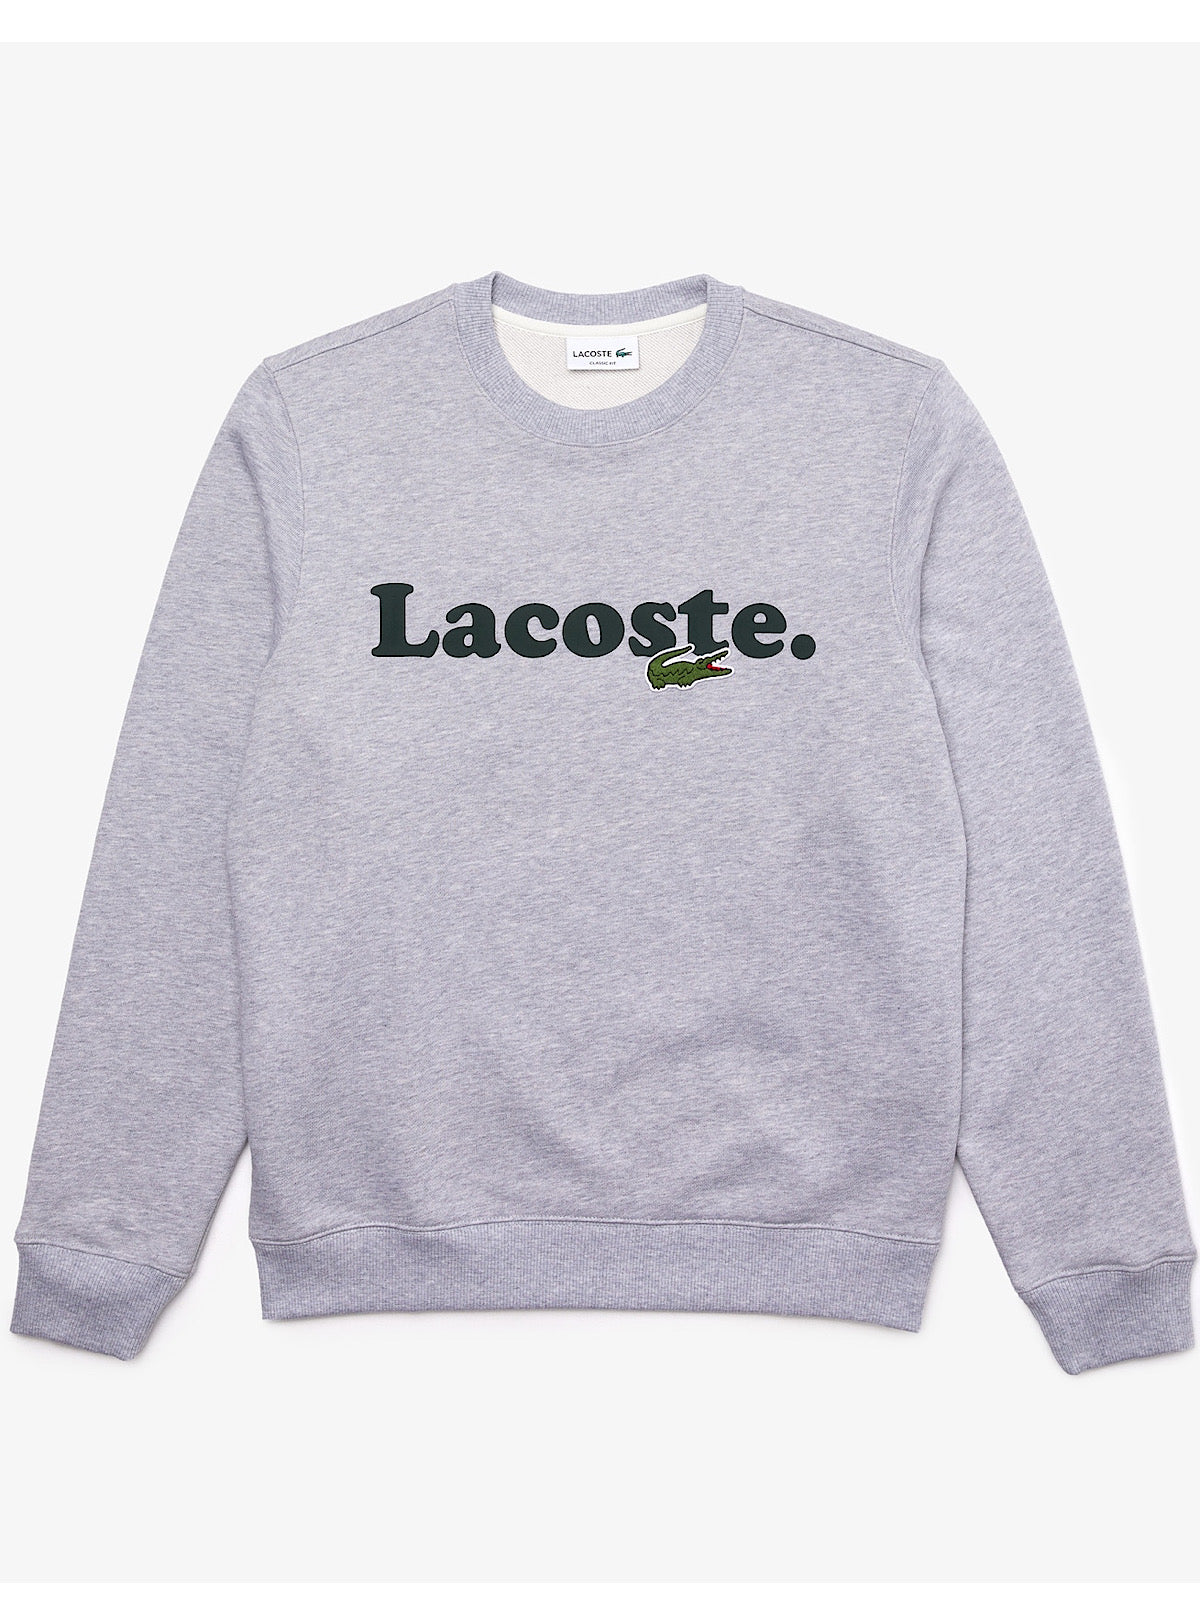 Lacoste Crewneck Sweater - Branded - Grey Chine - SH2173